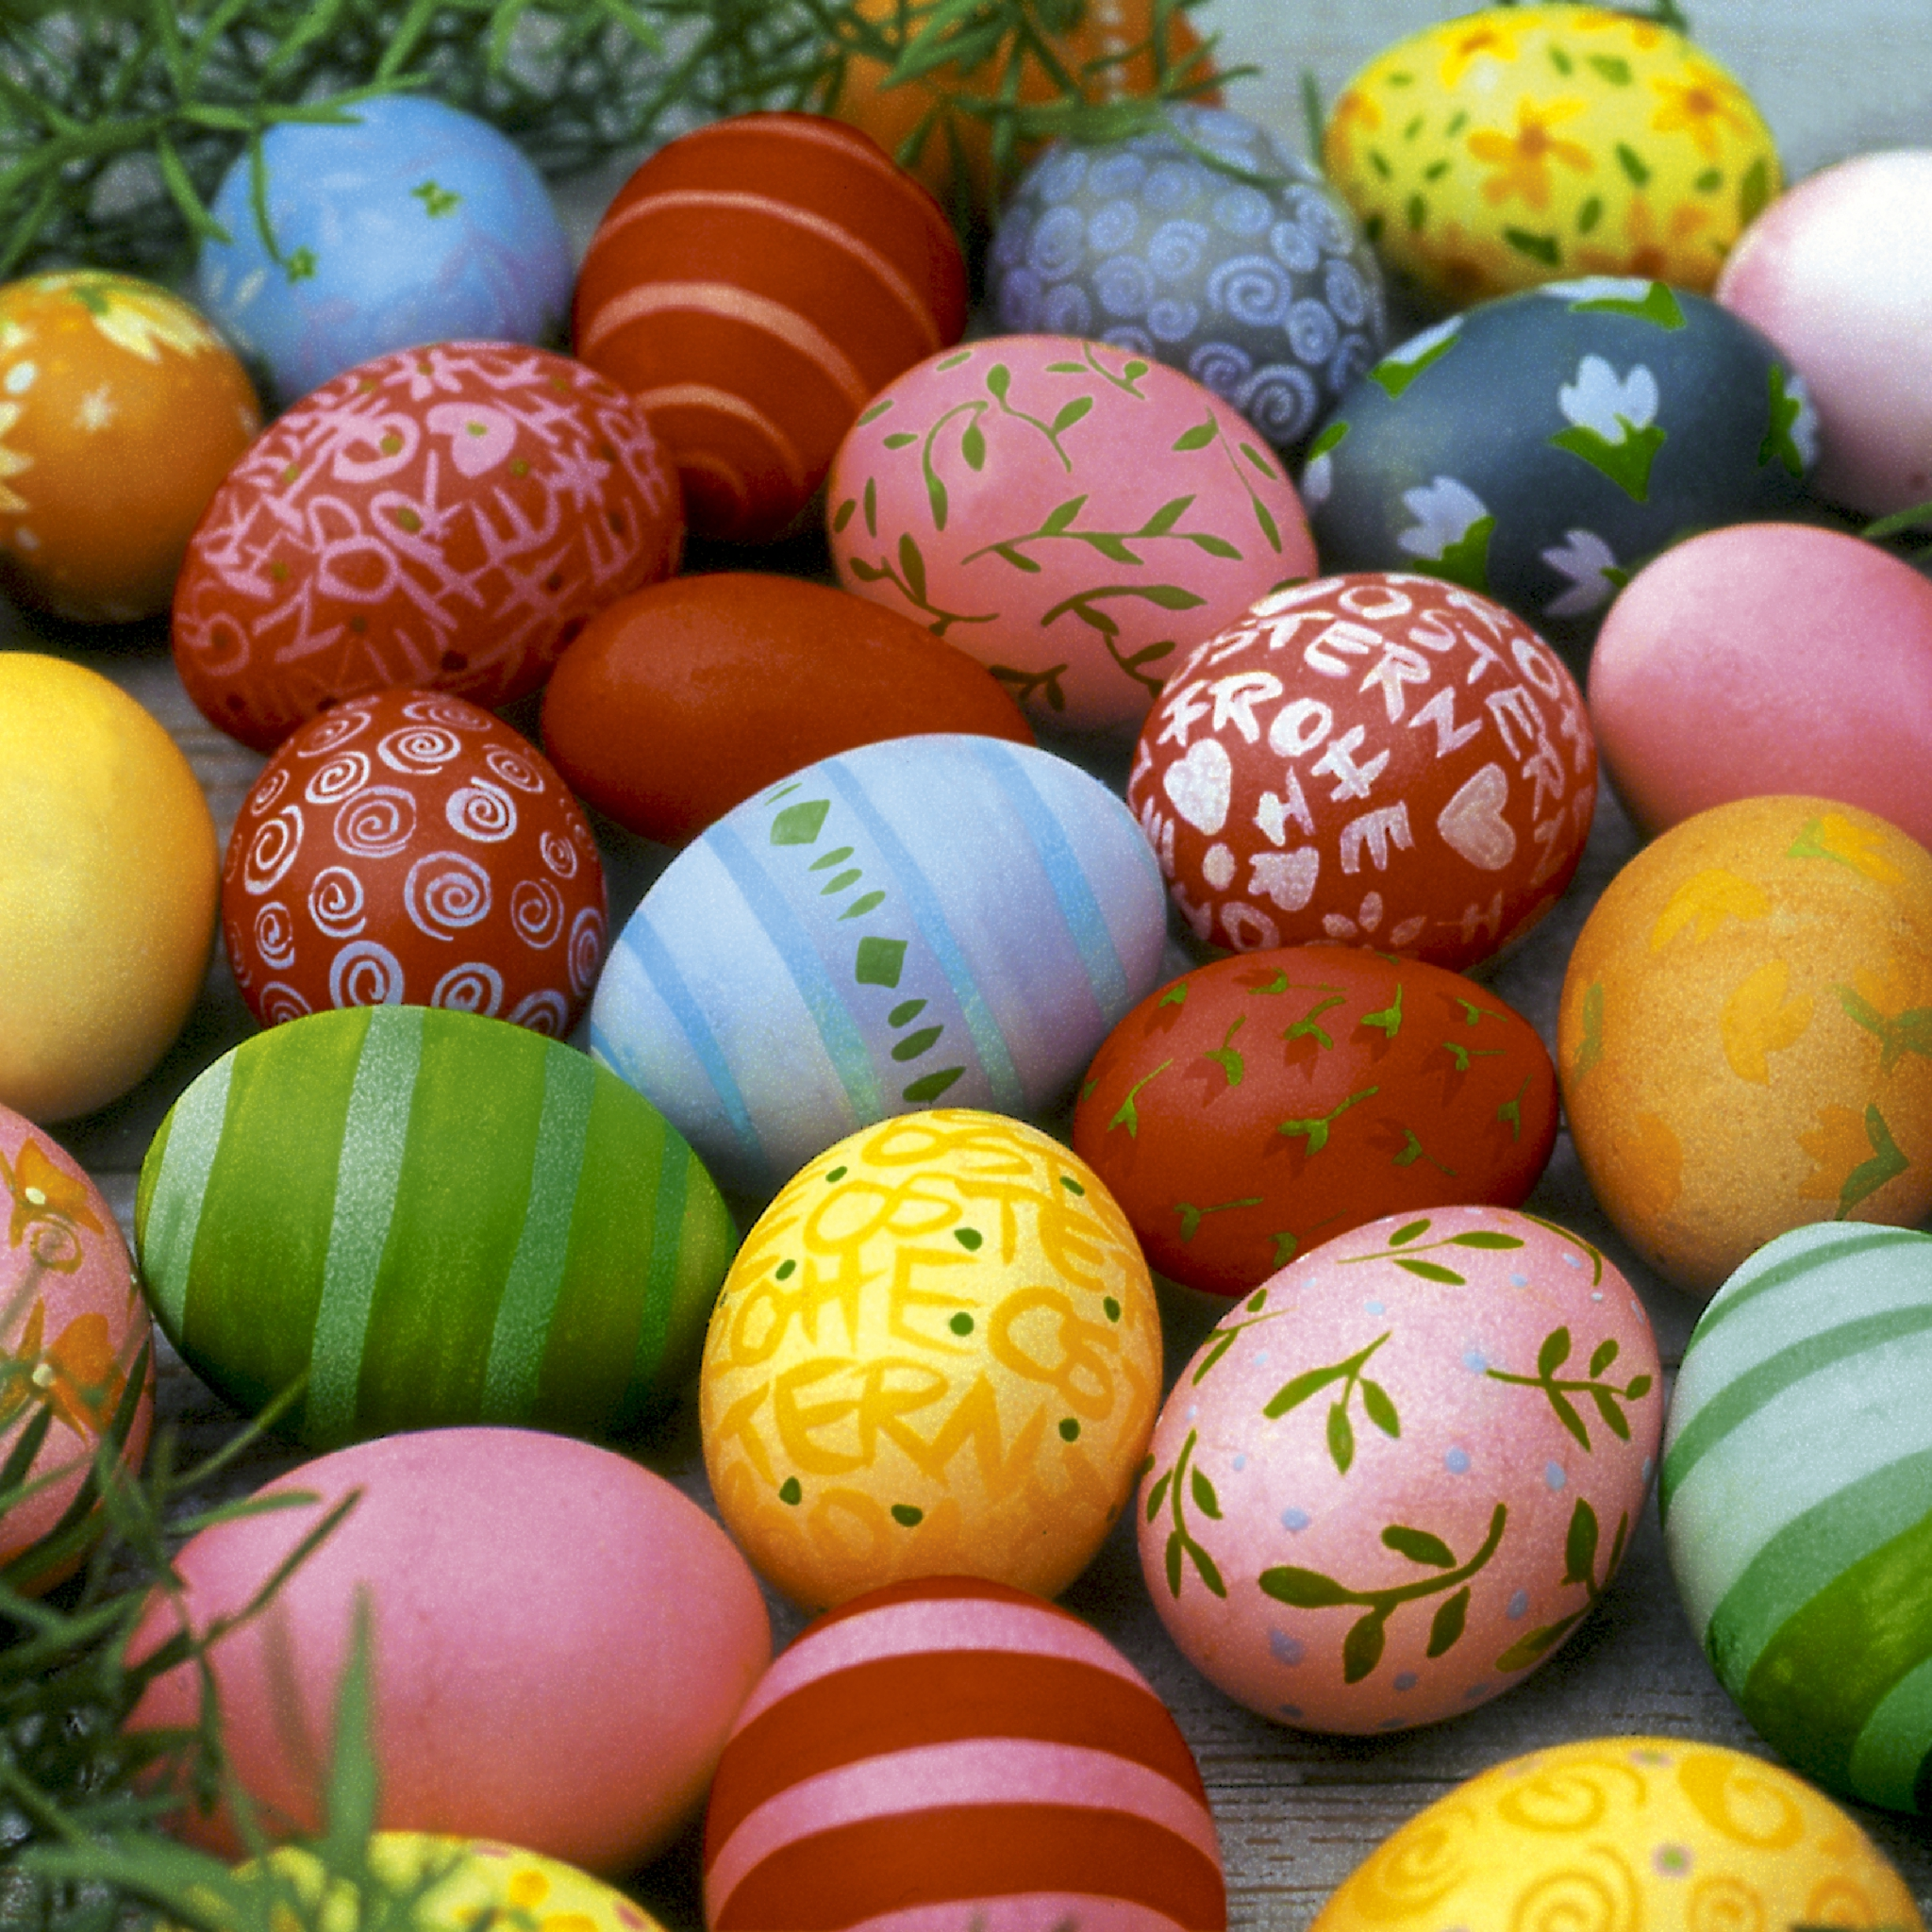 Cocktail Servietten Colourful eggs,  Ostern - Ostereier,  Ostern,  cocktail servietten,  Ostereier